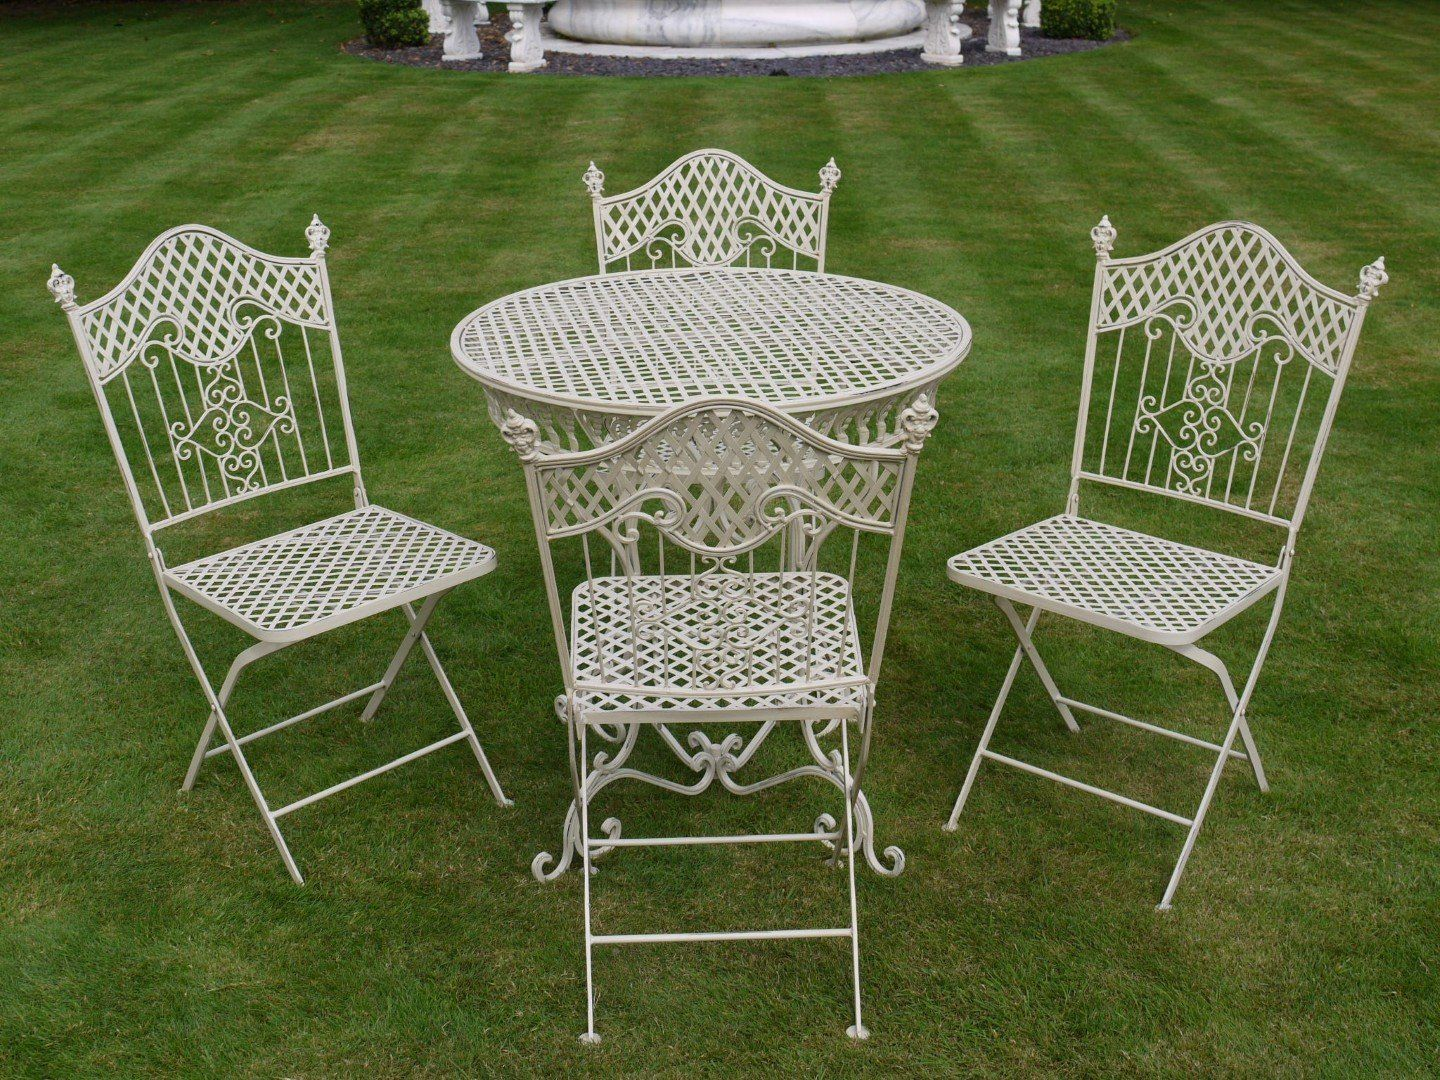 French bistro chairs metal - French Ornate Cream Wrought Iron Metal Garden Table And Chairs Bistro Furniture Set Amazon